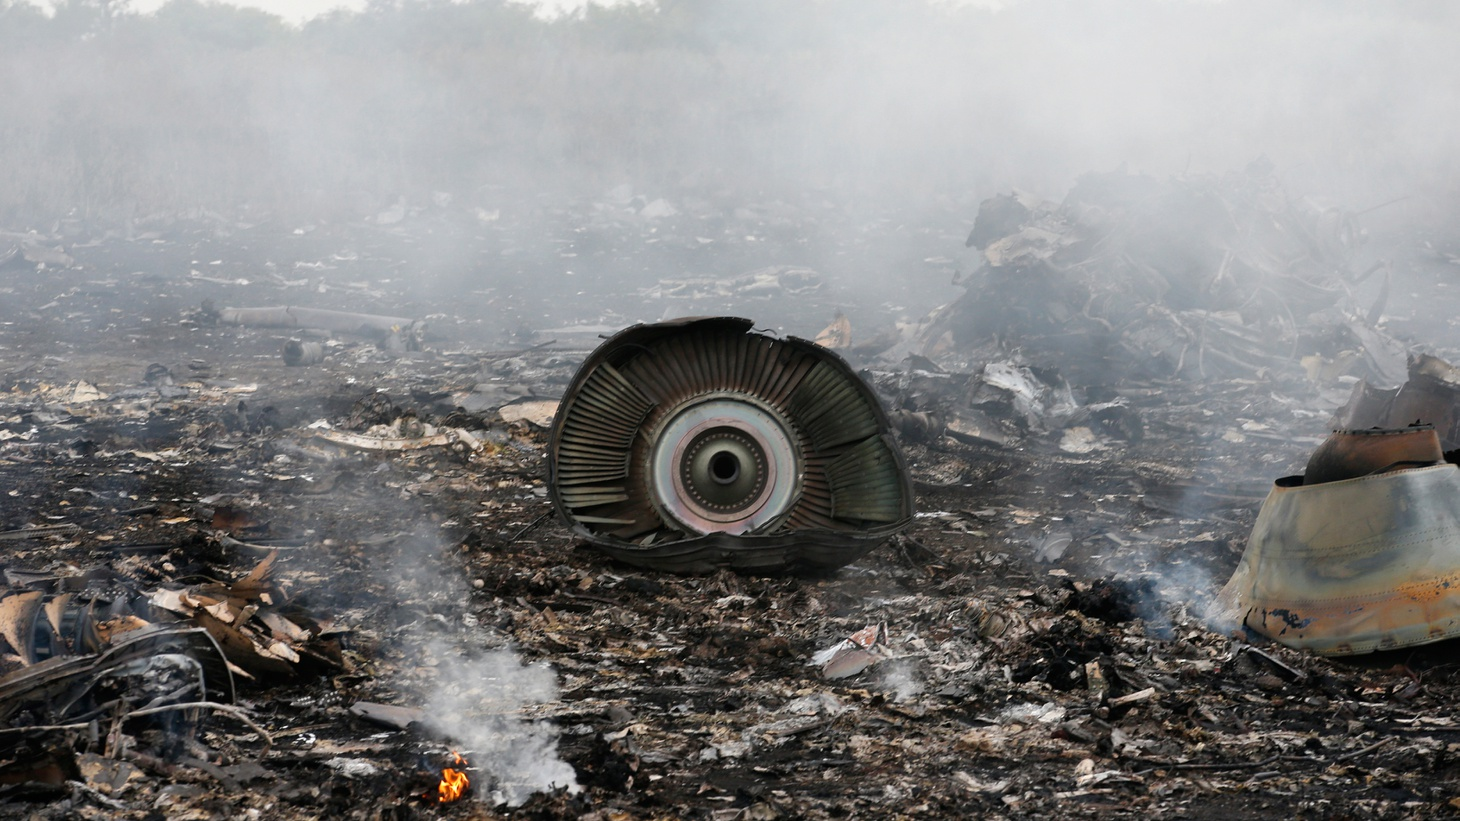 The President said it's too early to place the blame, but the US is raising tough questions about Russia's involvement in the Malaysian Boeing 777 shot down yesterday over Eastern Ukraine. We'll also give an update on Israel's invasion of Gaza.